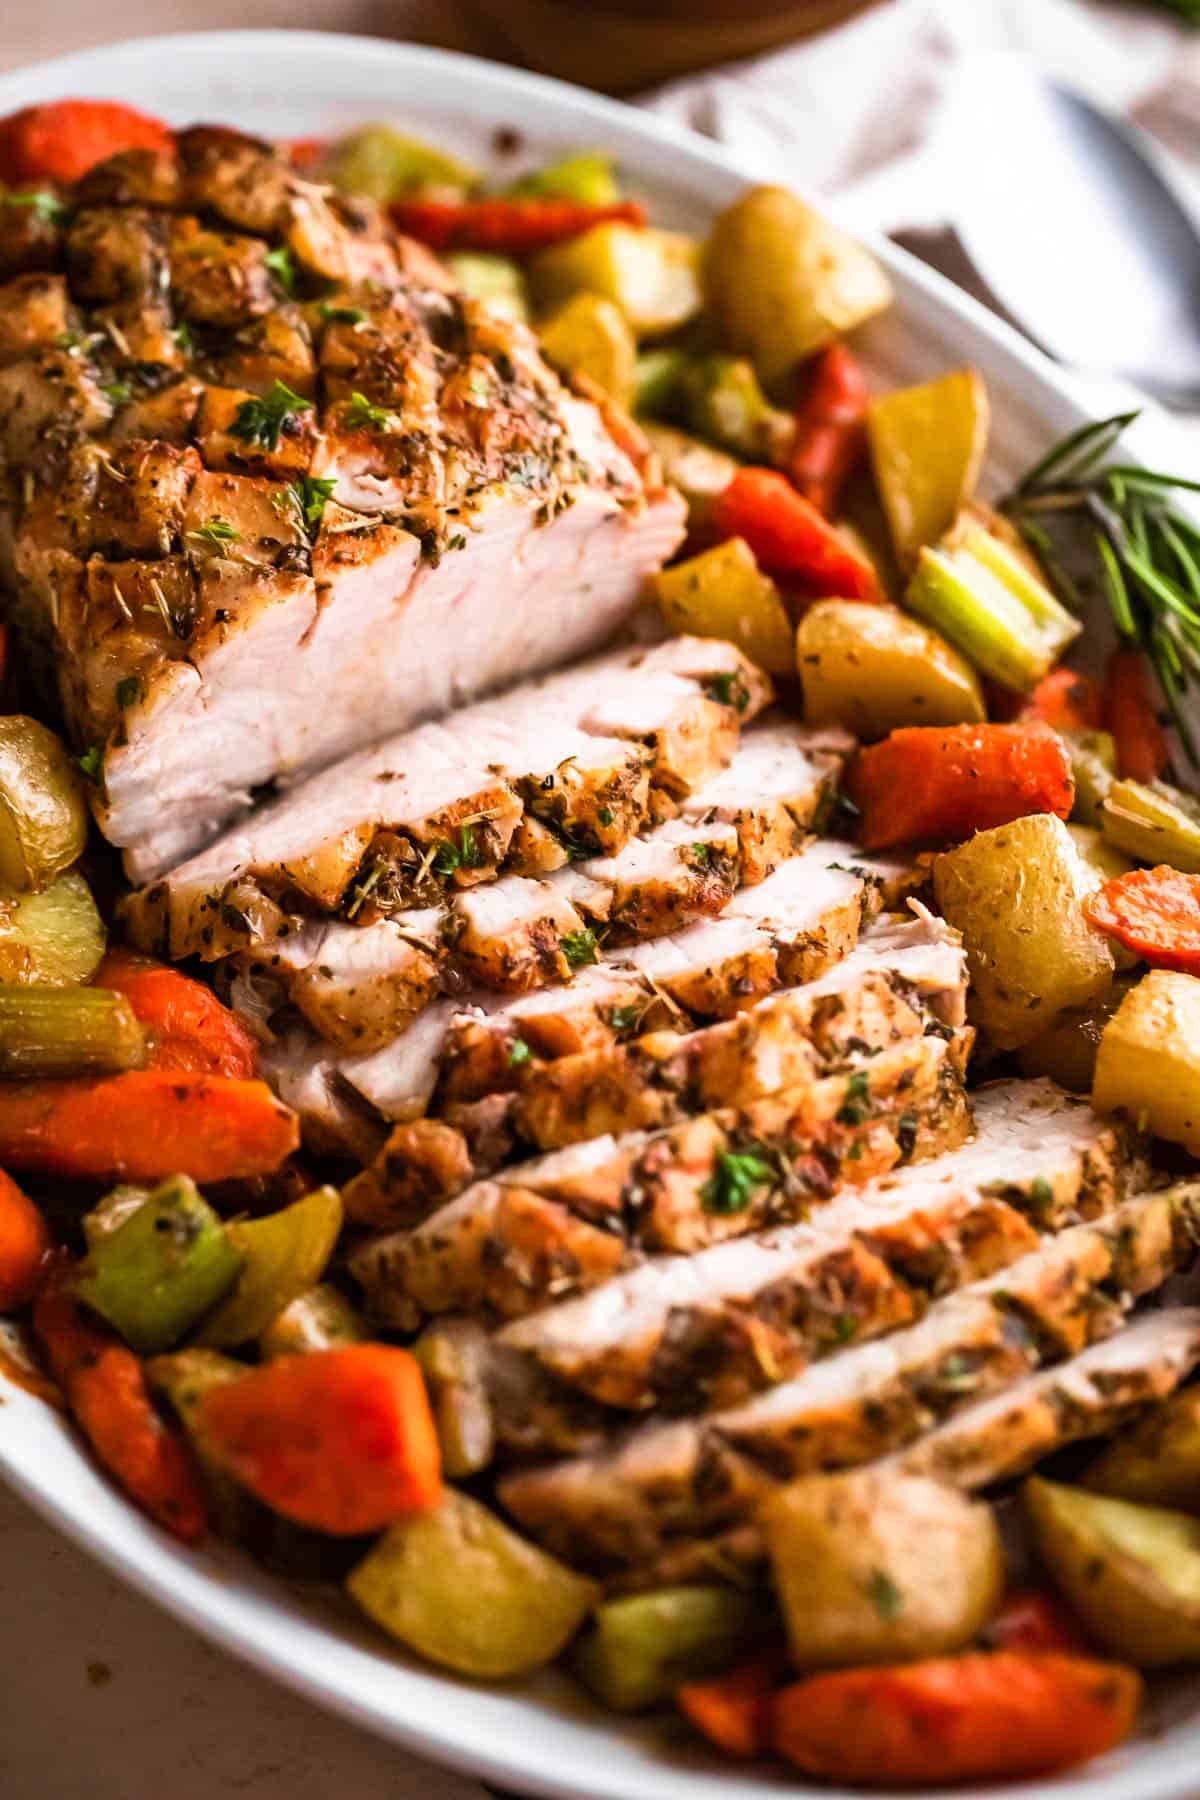 side shot of oval plate with cooked and sliced pork loin roast and roasted vegetables arranged around the roast